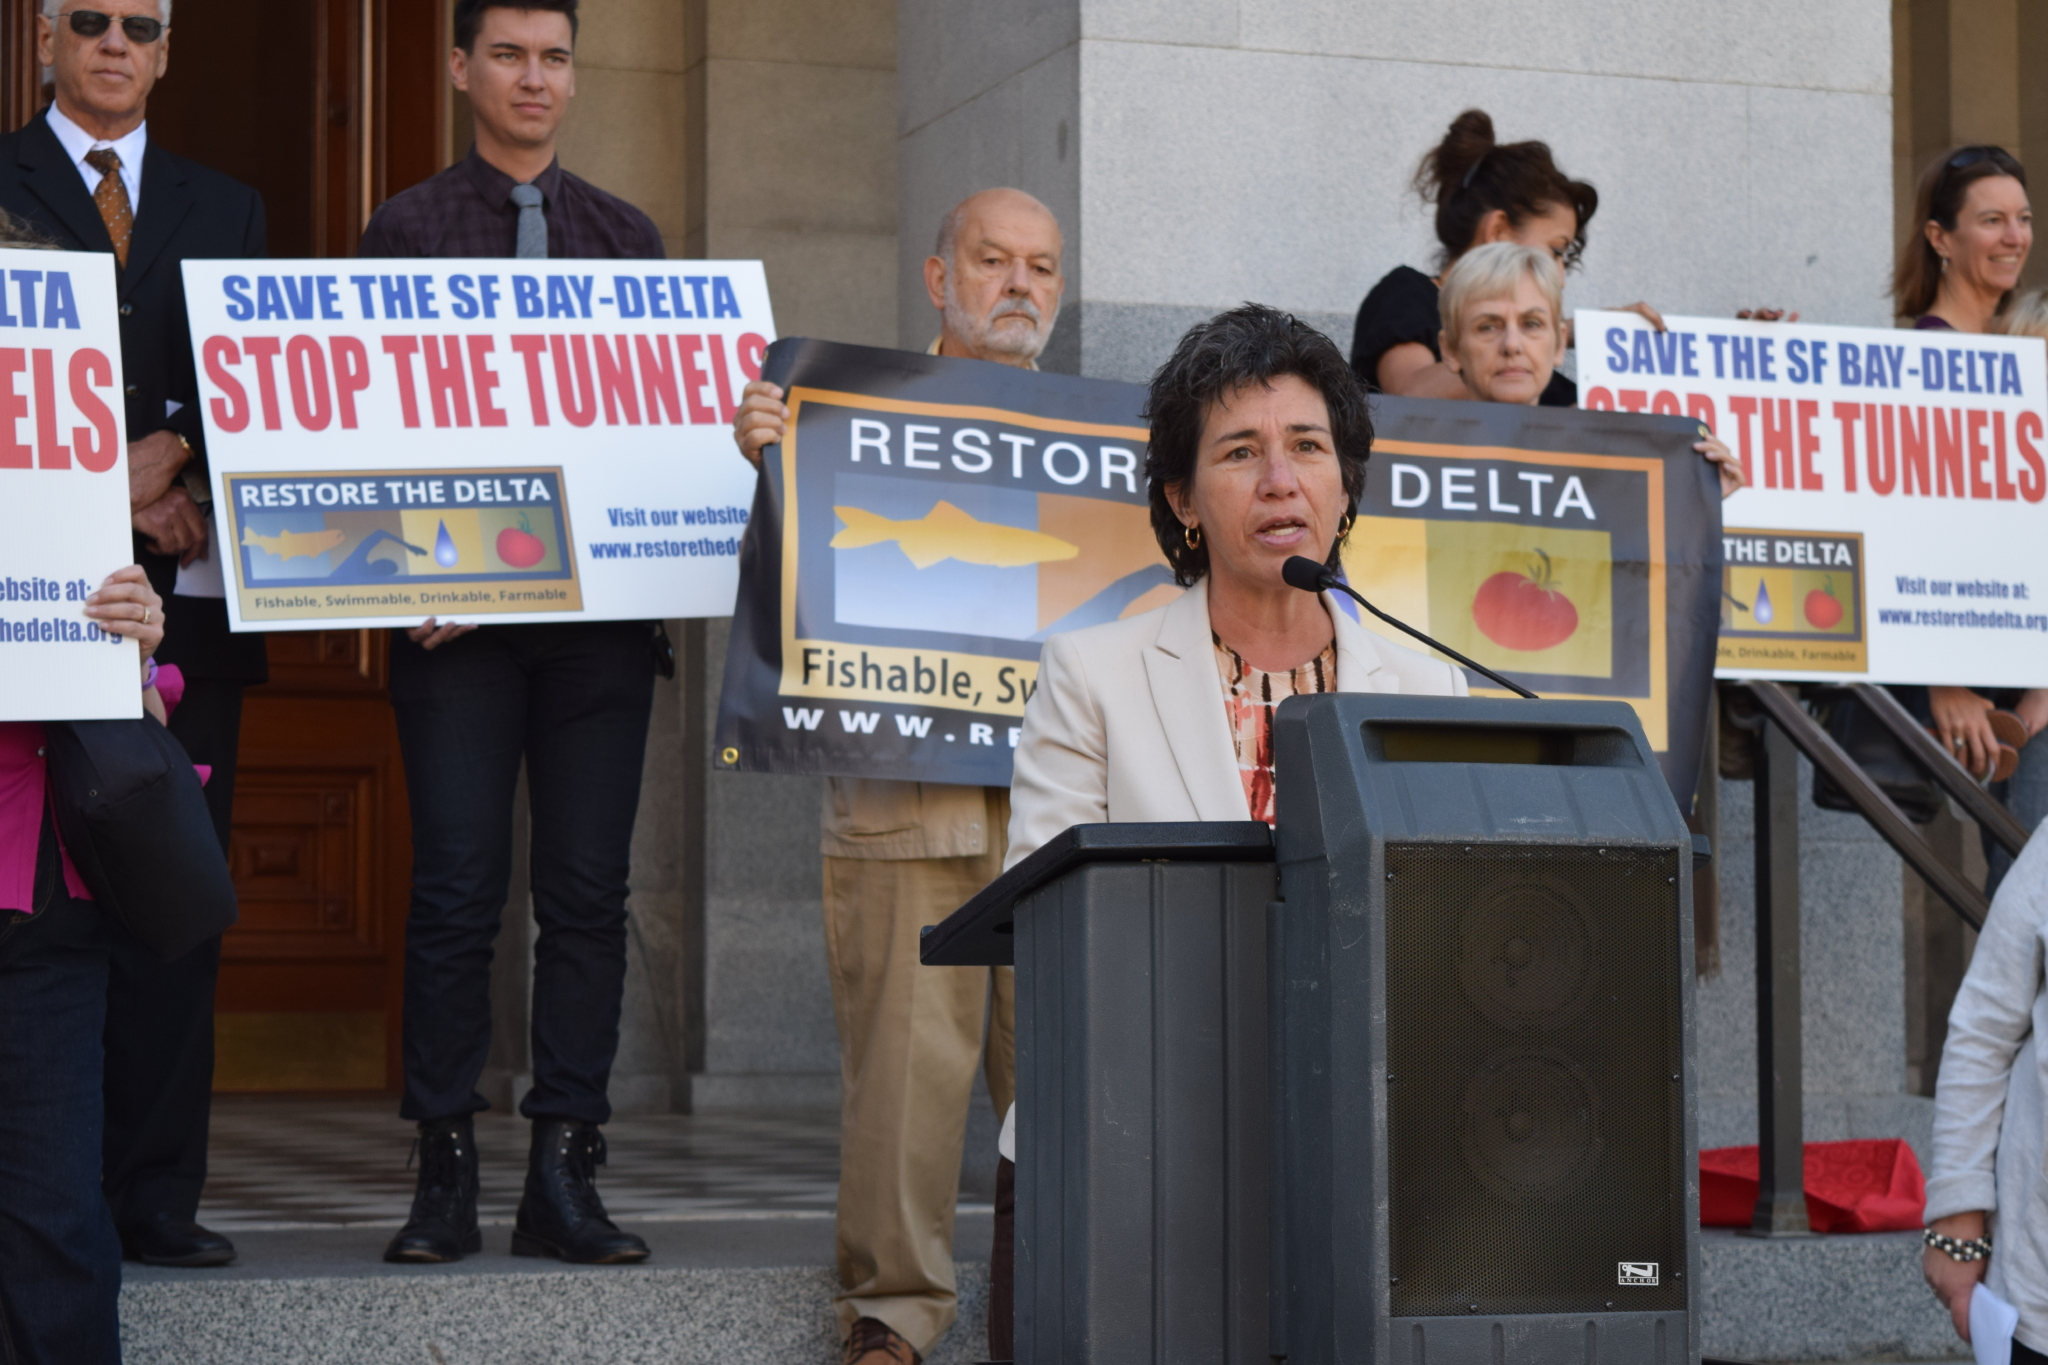 Susan has fought against proposals to build a tunnel system through the San Joaquin Delta, that would leave a lasting negative impact on our environment and send limited water resources south.